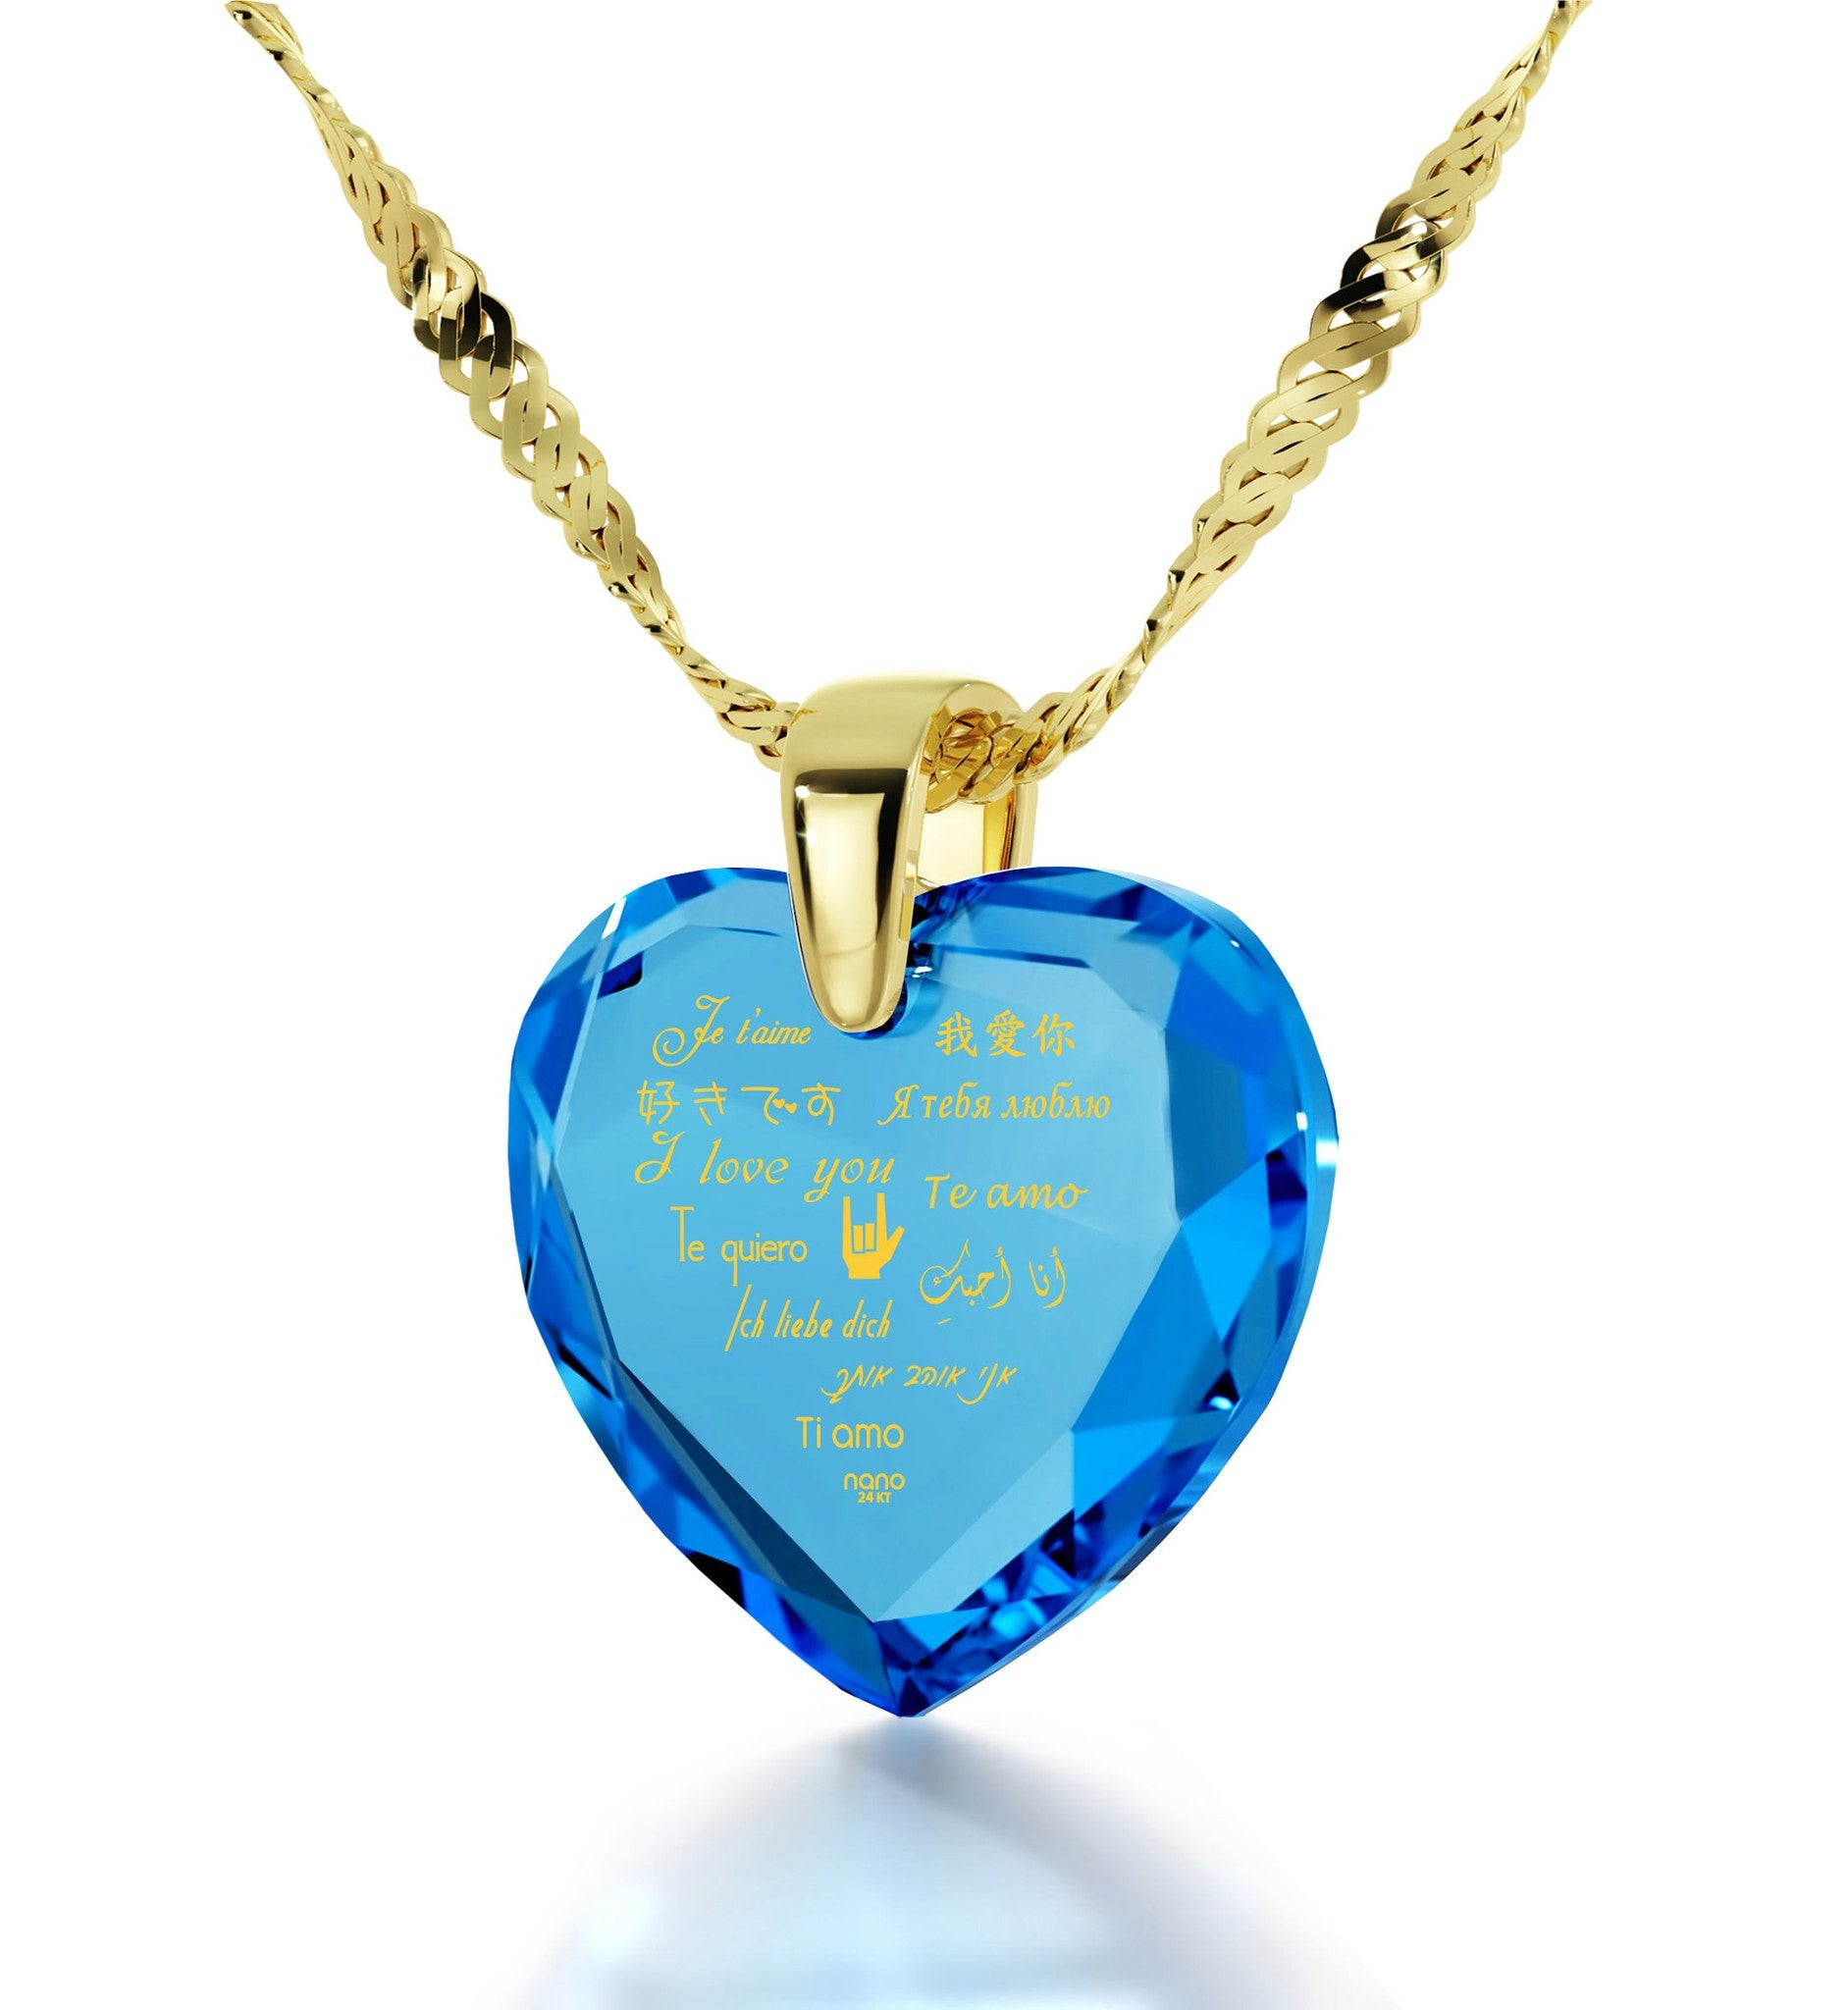 Good Valentine's Day Gifts for Girlfriend, CZ Blue Heart, Meaningful Necklaces, Wife Birthday Ideas by Nano Jewelry